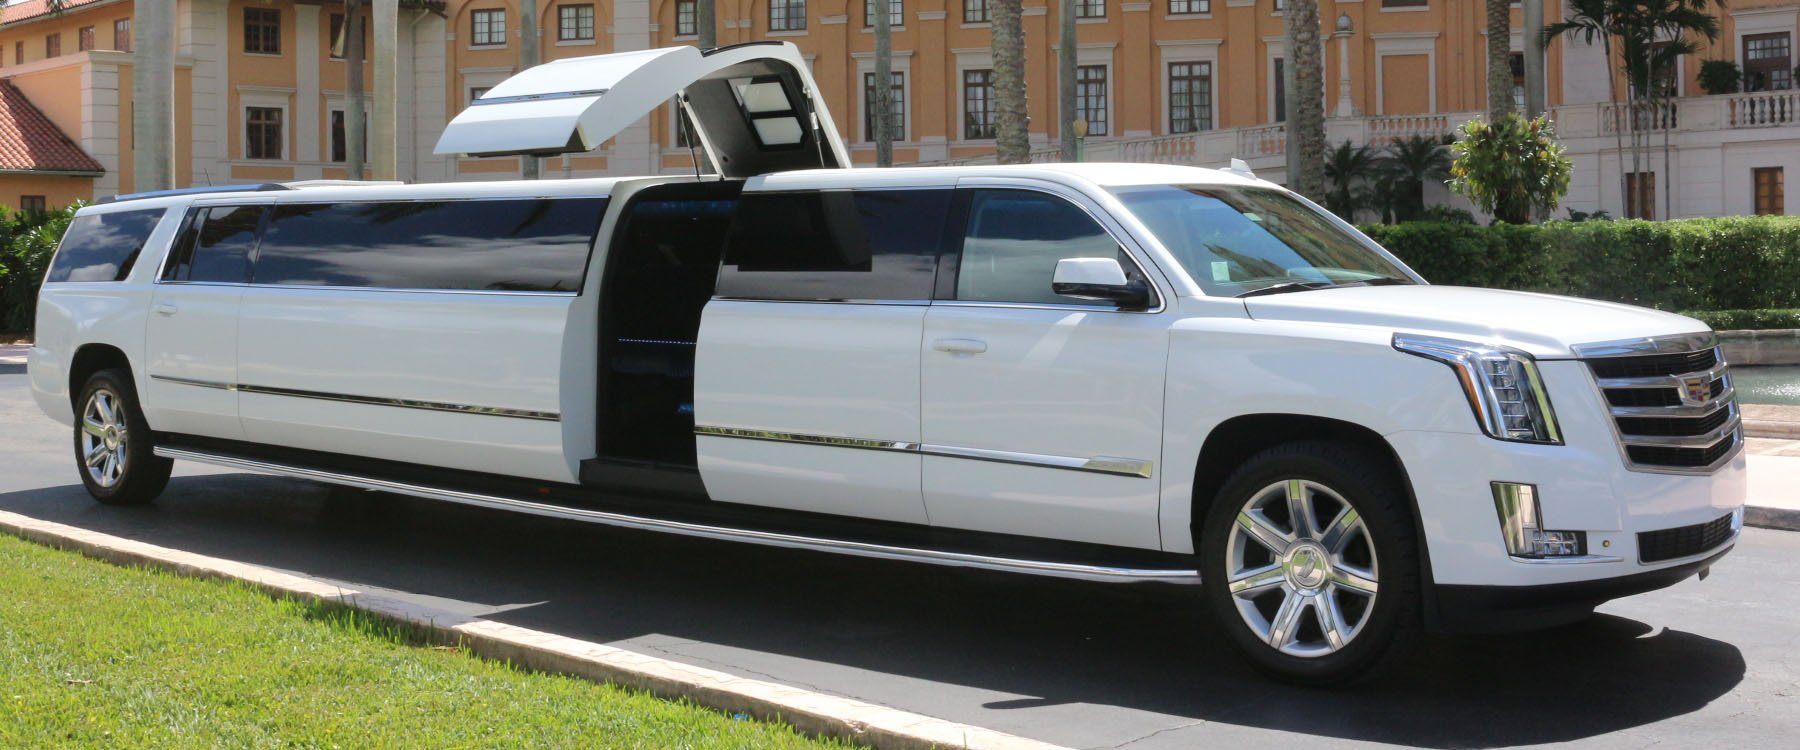 Exterior view of Cadillac Limo rental in Miami